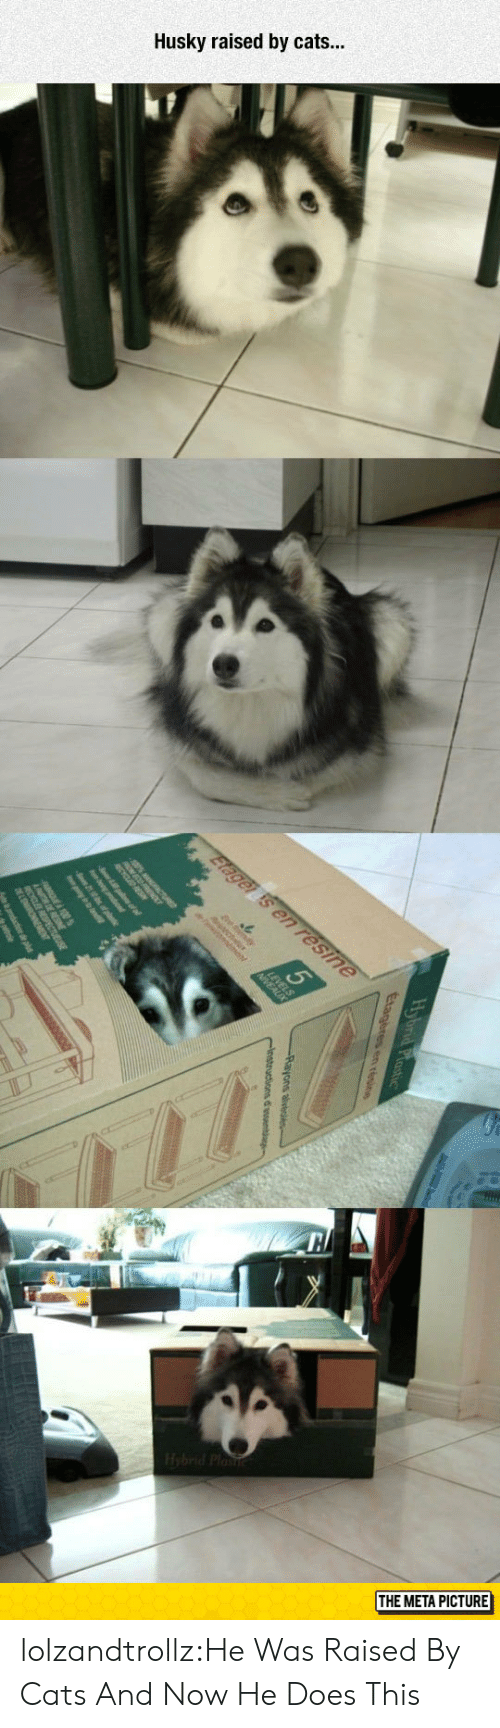 Cats, Tumblr, and Blog: Husky raised by cats...  THE META PICTURE lolzandtrollz:He Was Raised By Cats And Now He Does This